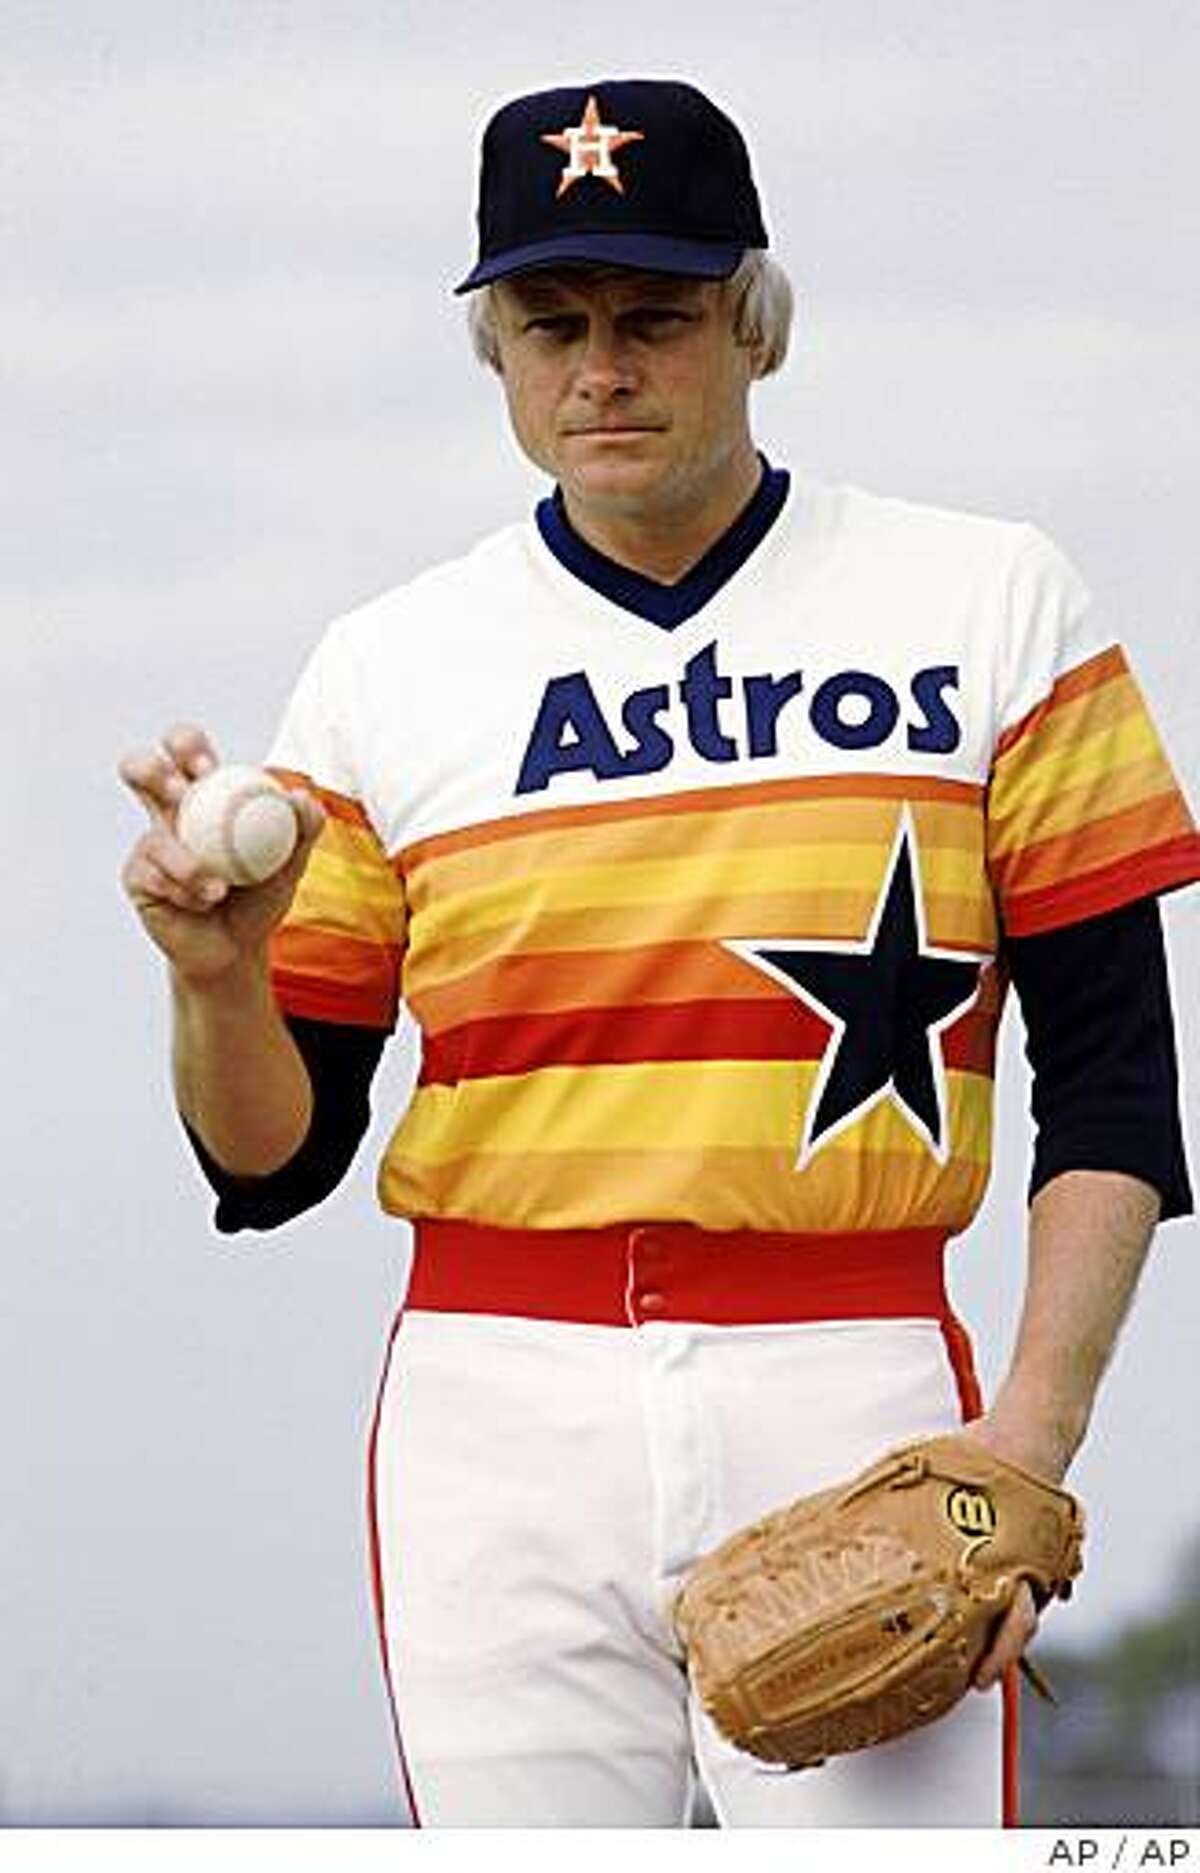 Former Houston Astros pitcher Joe Niekro is shown June 17, 1985, in Houston, when he played baseball with the Houston Astros. Niekro, Houston's career victory leader, died Friday, Oct. 27, 2006, Astros president Tal Smith said. He was 61. The two-time 20-game winner suffered a brain aneurysm Thursday and was taken to South Florida Baptist Hospital in nearby Plant City, where he lived. He later was transferred to St. Joseph's Hospital, where he died. (AP Photo/Houston Chronicle)